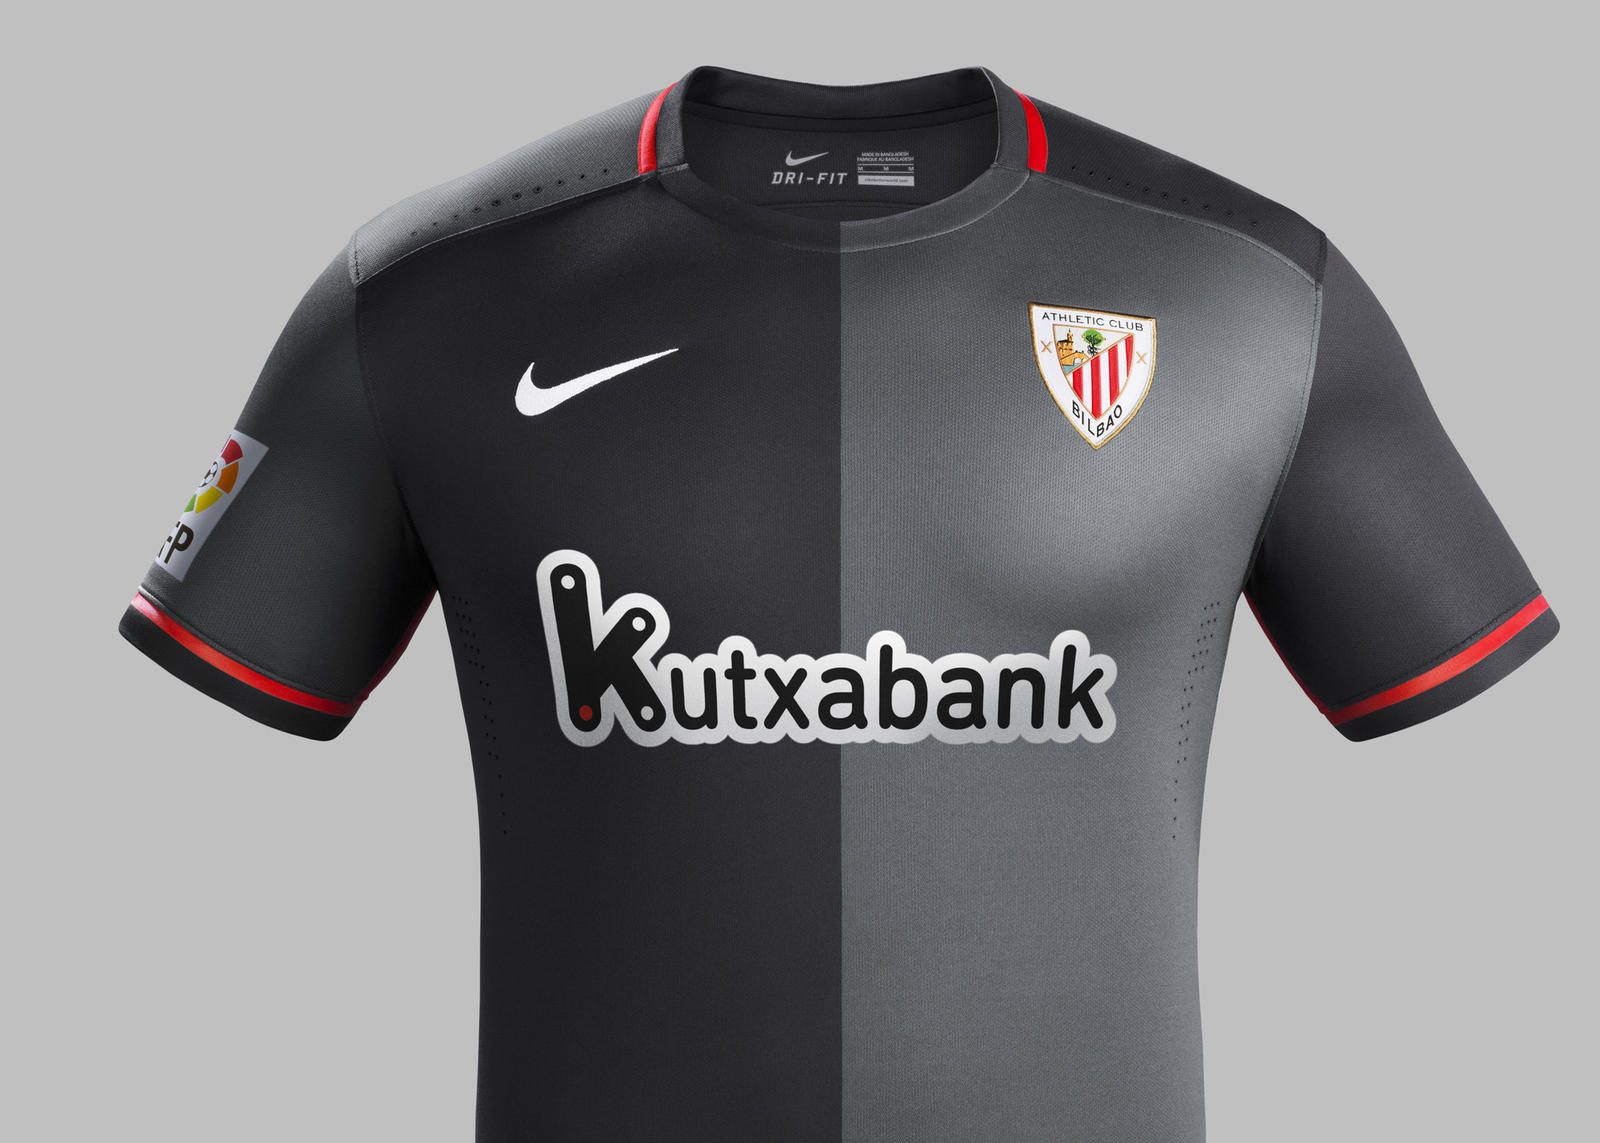 Athletic Club de Bilbao away shirt season 2015-16